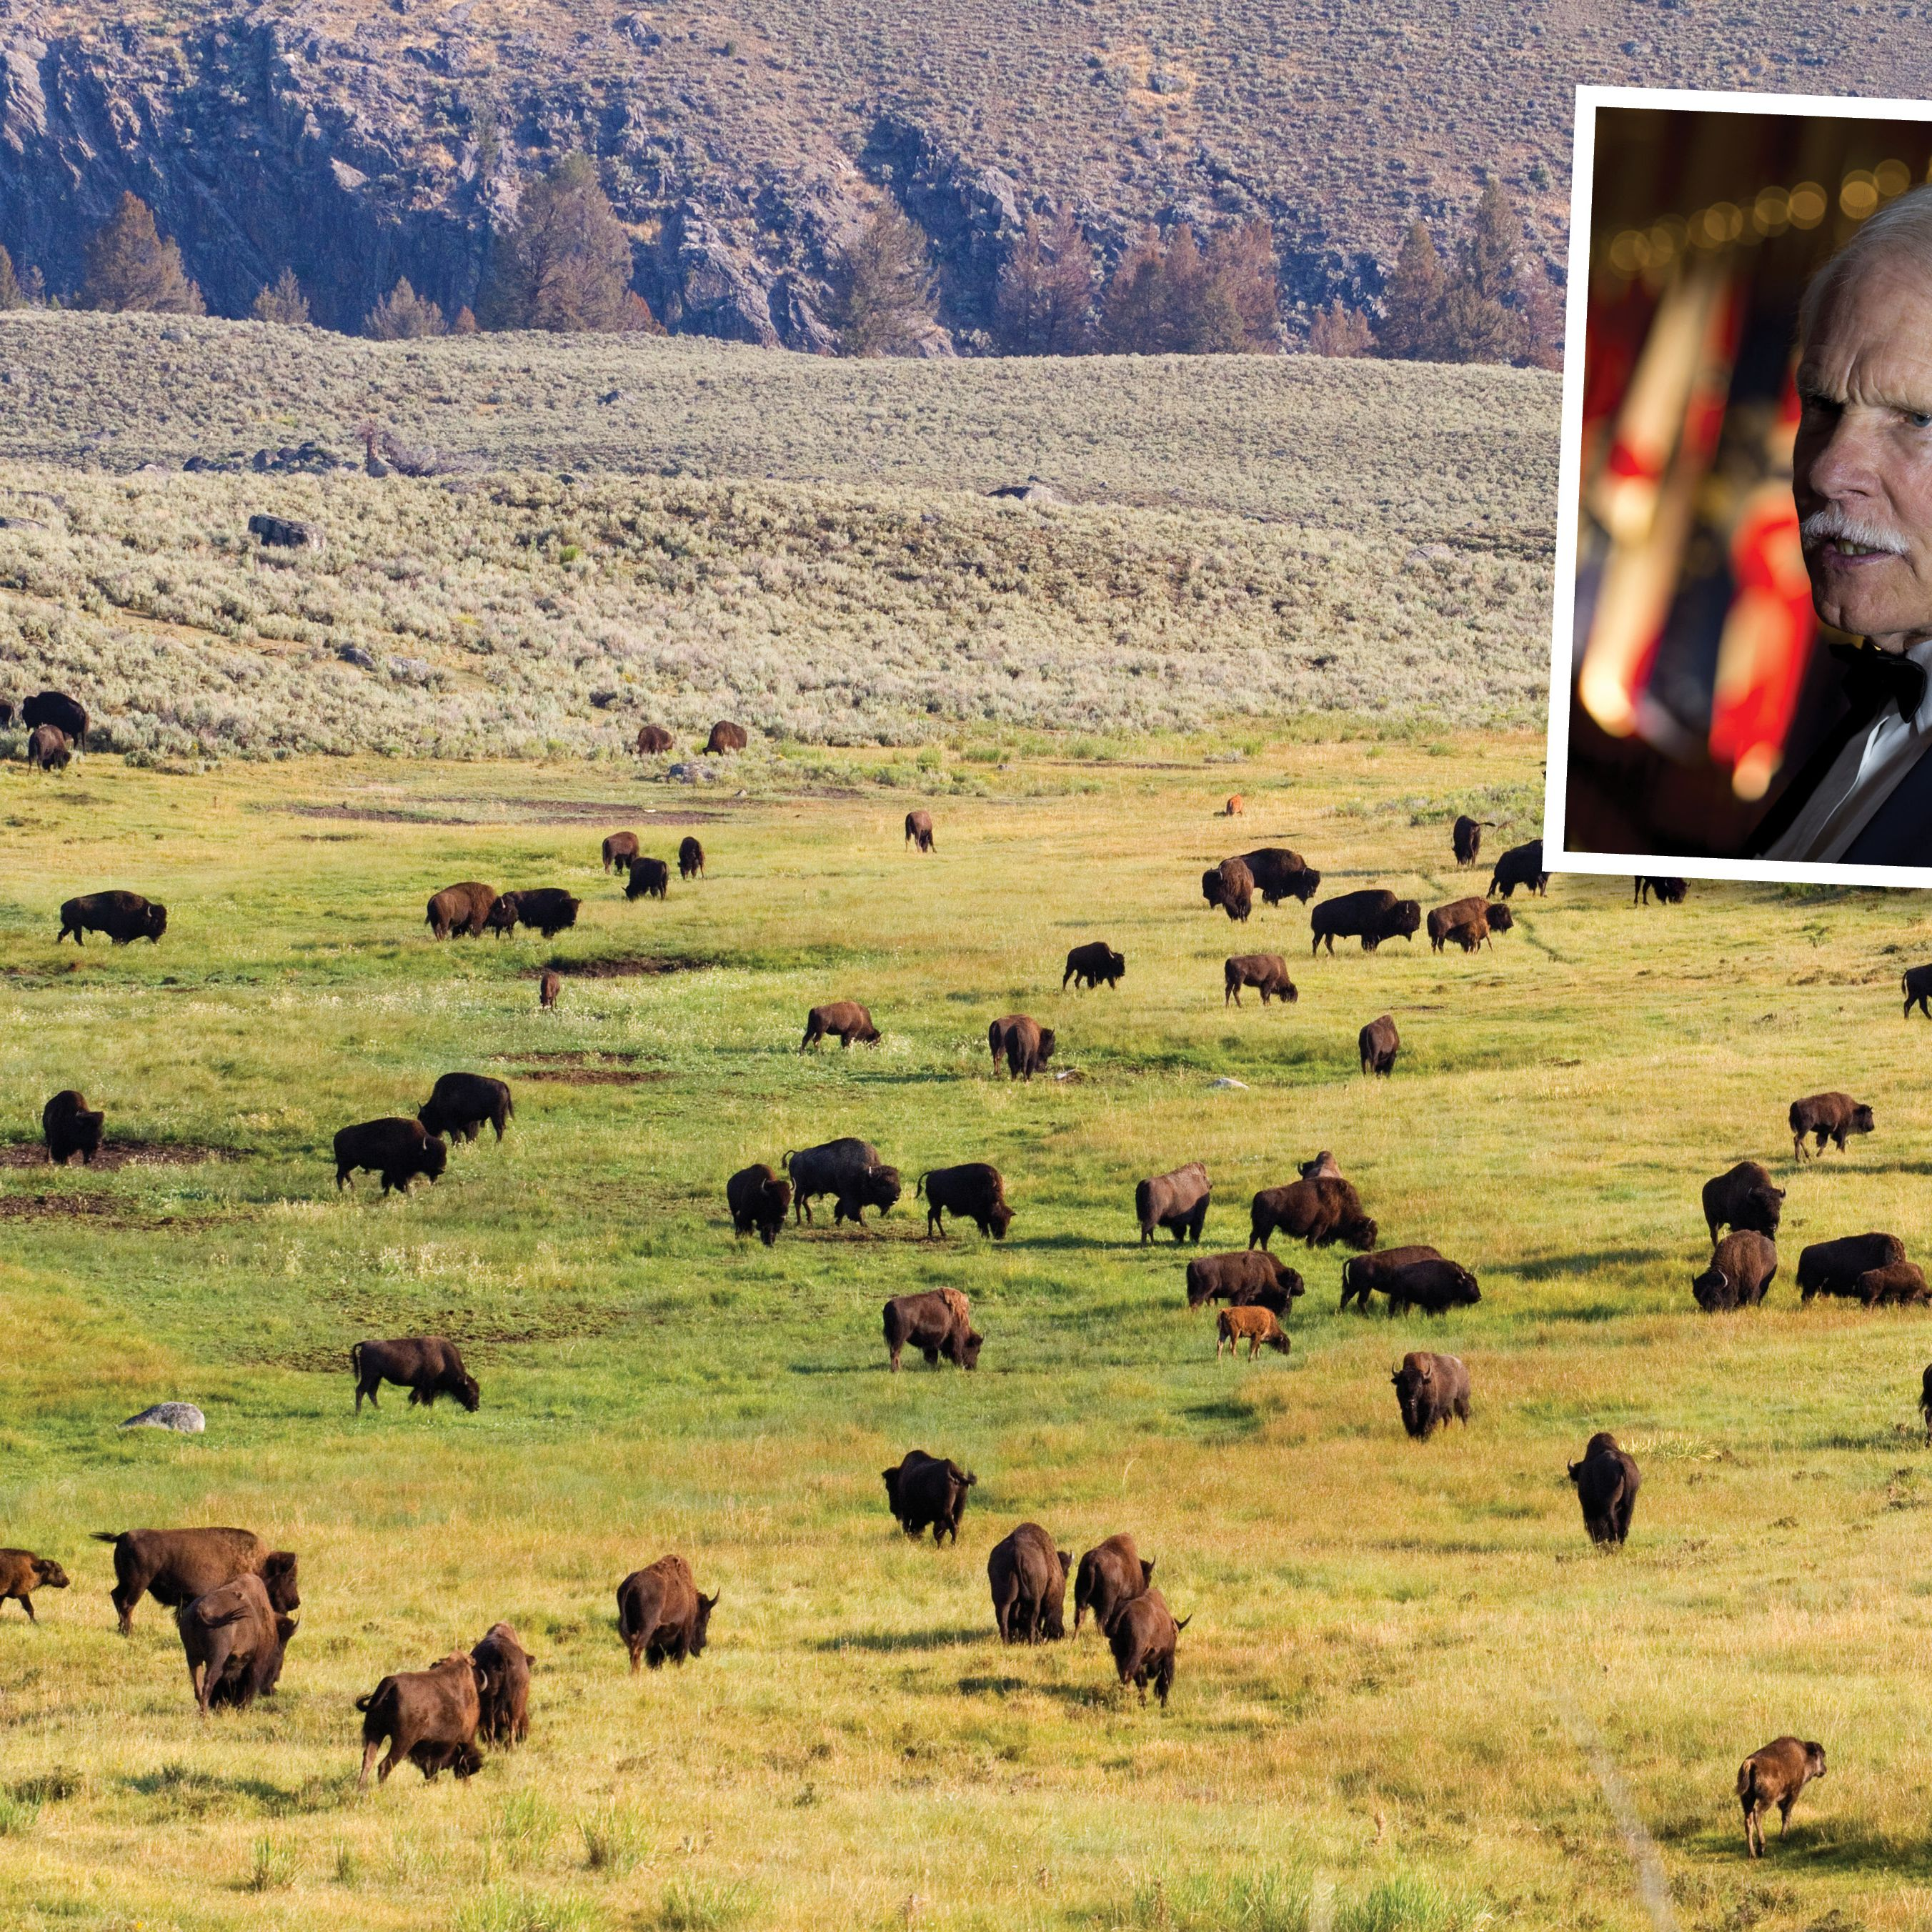 Ted Turner owns land in New Mexico, Colorado, Montana, South Dakota, Nebraska, and Kansas, and much of it is home to his bison herd, which, at 55,000 head, accounts for more than 10% of all the bison on earth.Acreage, in Rhode Islands: 2.02